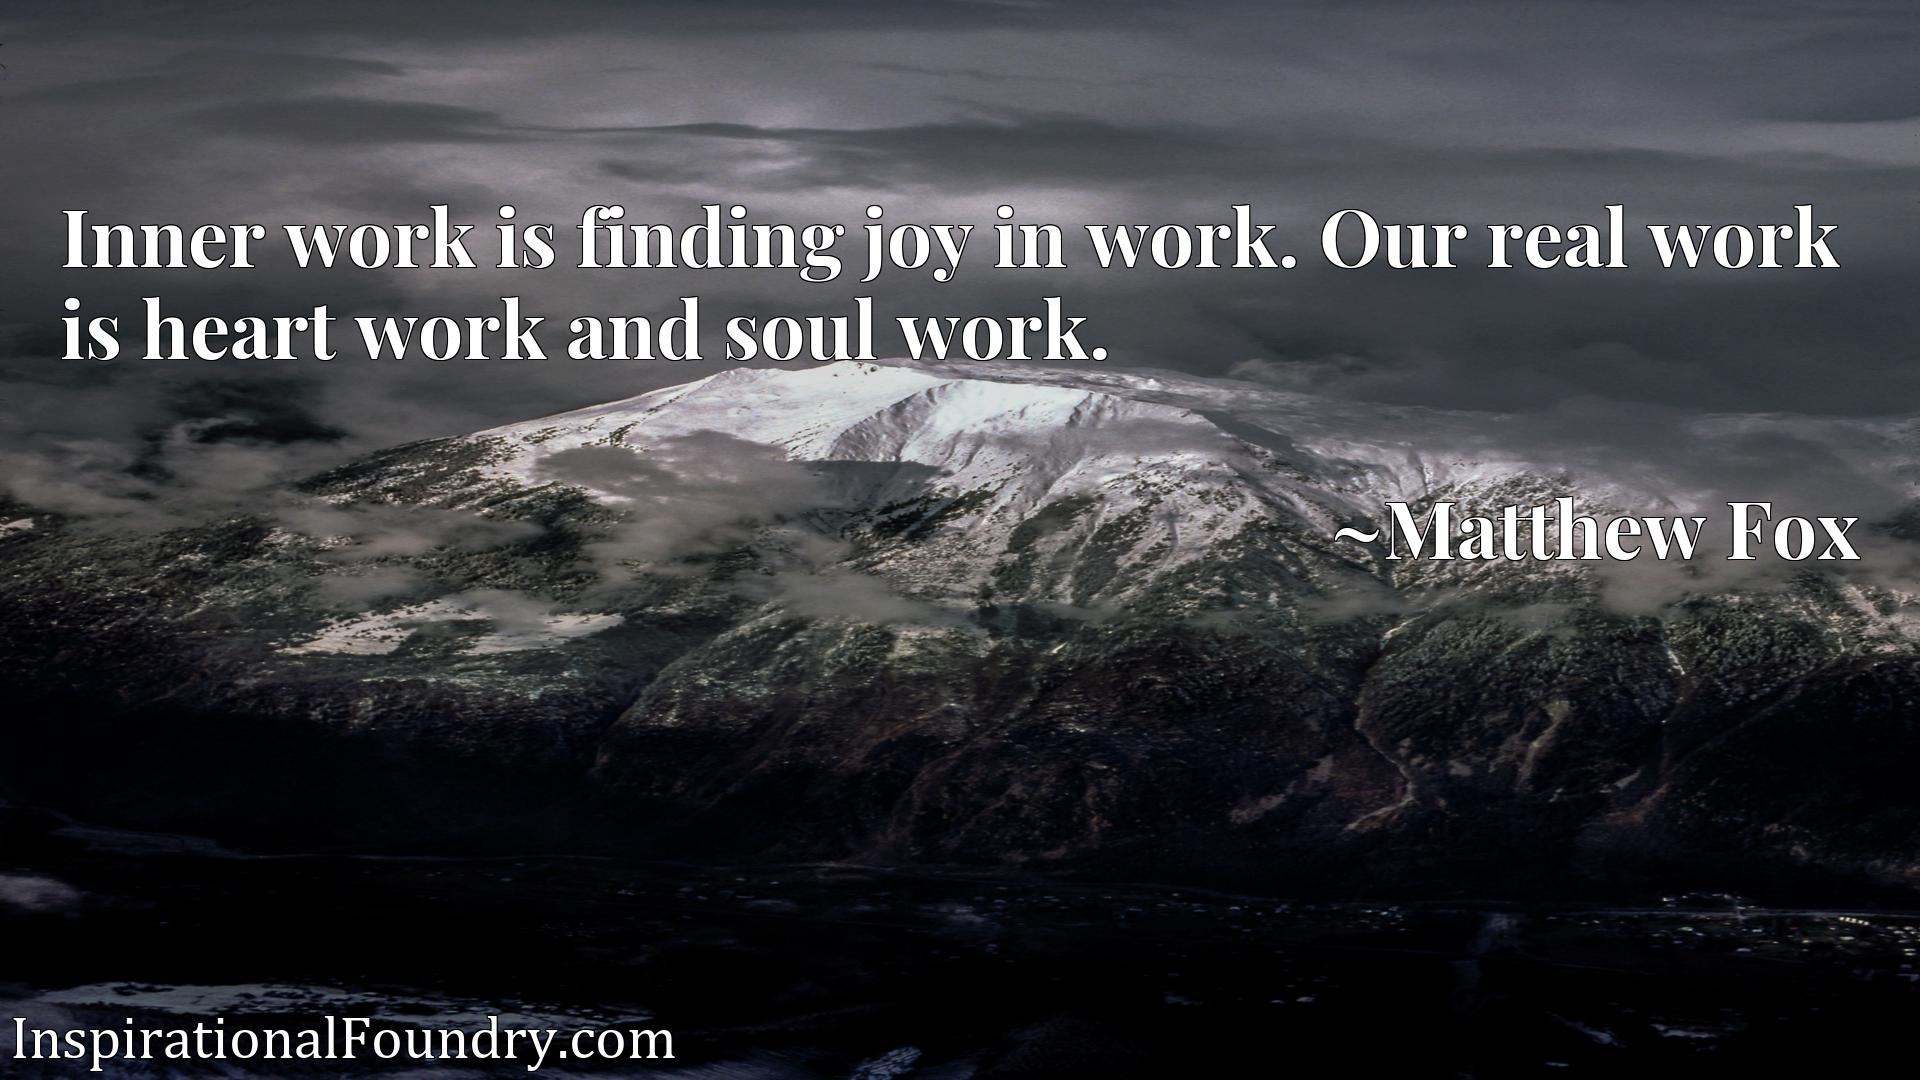 Inner work is finding joy in work. Our real work is heart work and soul work.